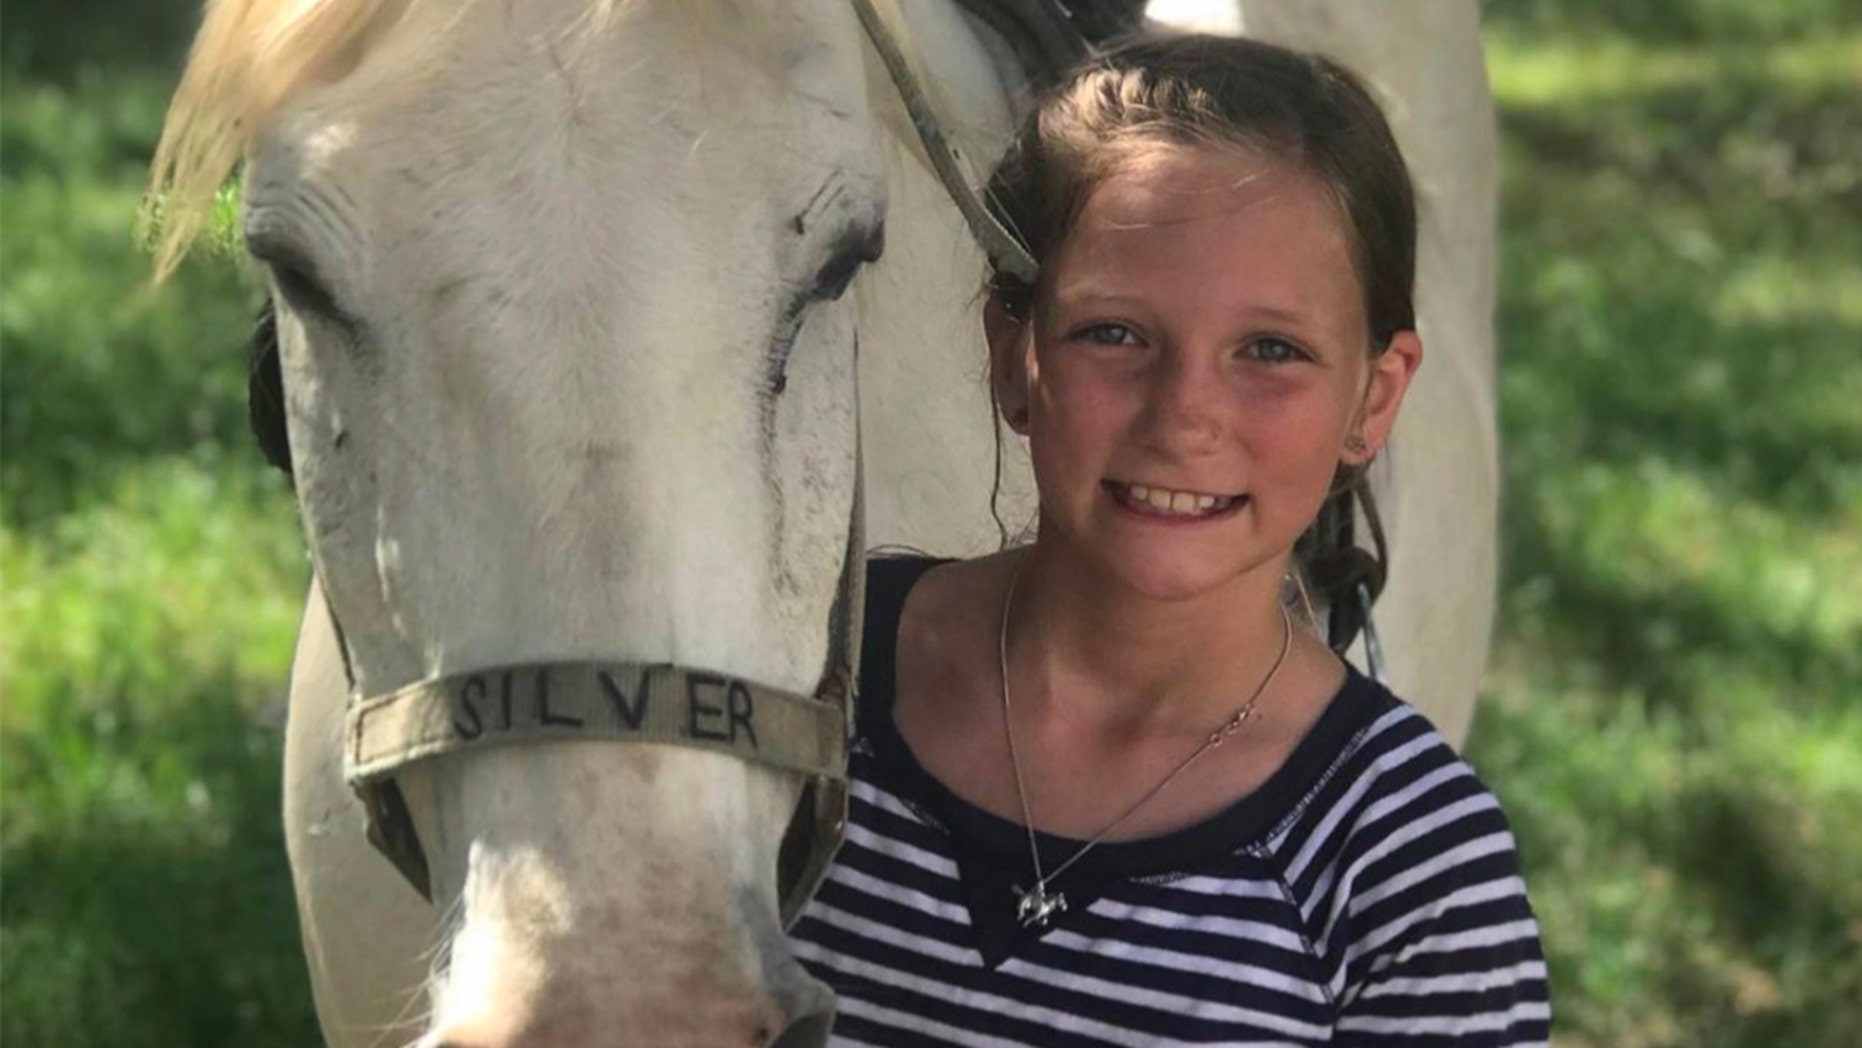 Roxli Doss was diagnosed with diffuse intrinsic pontine glioma, or DIPG, in June. Now, the inoperable brain tumor of the 11-year-old girl in Texas has disappeared, and doctors don't know why.(GoFundMe)